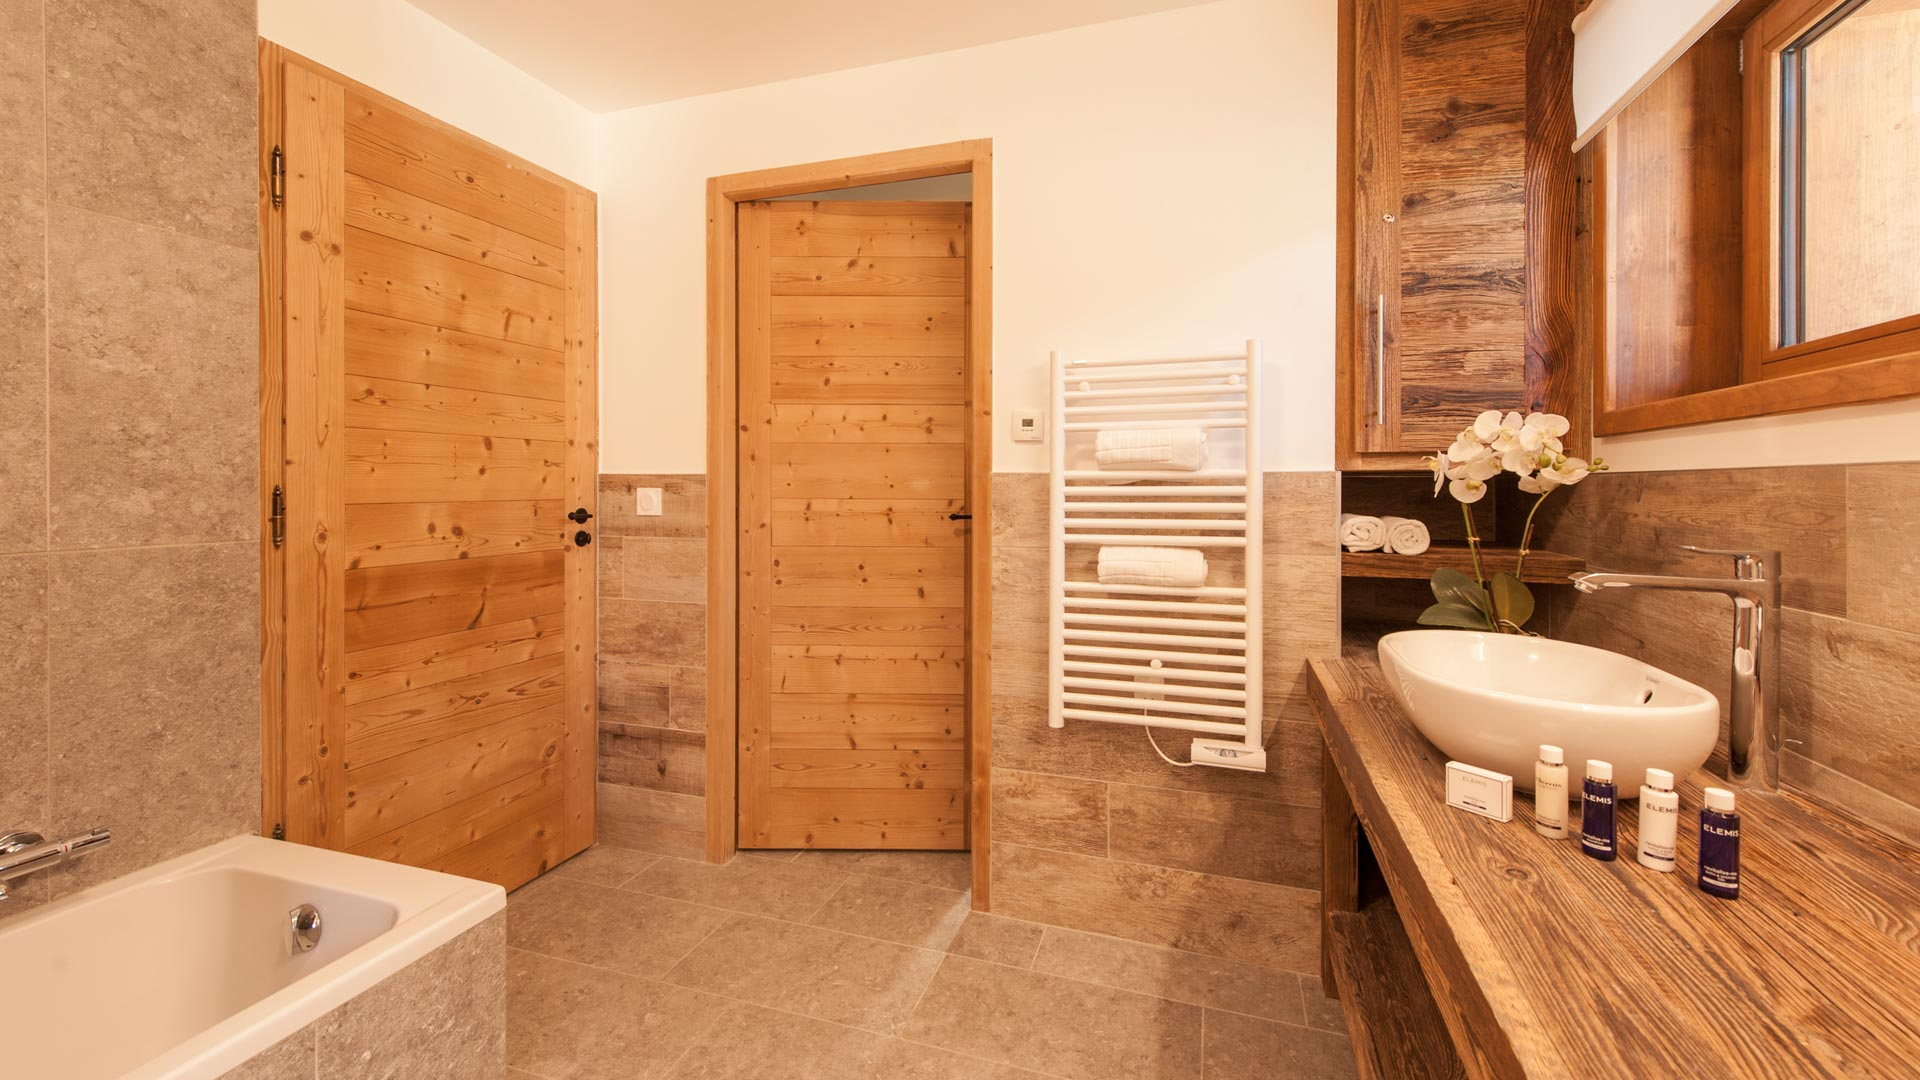 Bedroom 4 bathroom - Rayas Luxury Self catered chalet in Sainte Foy